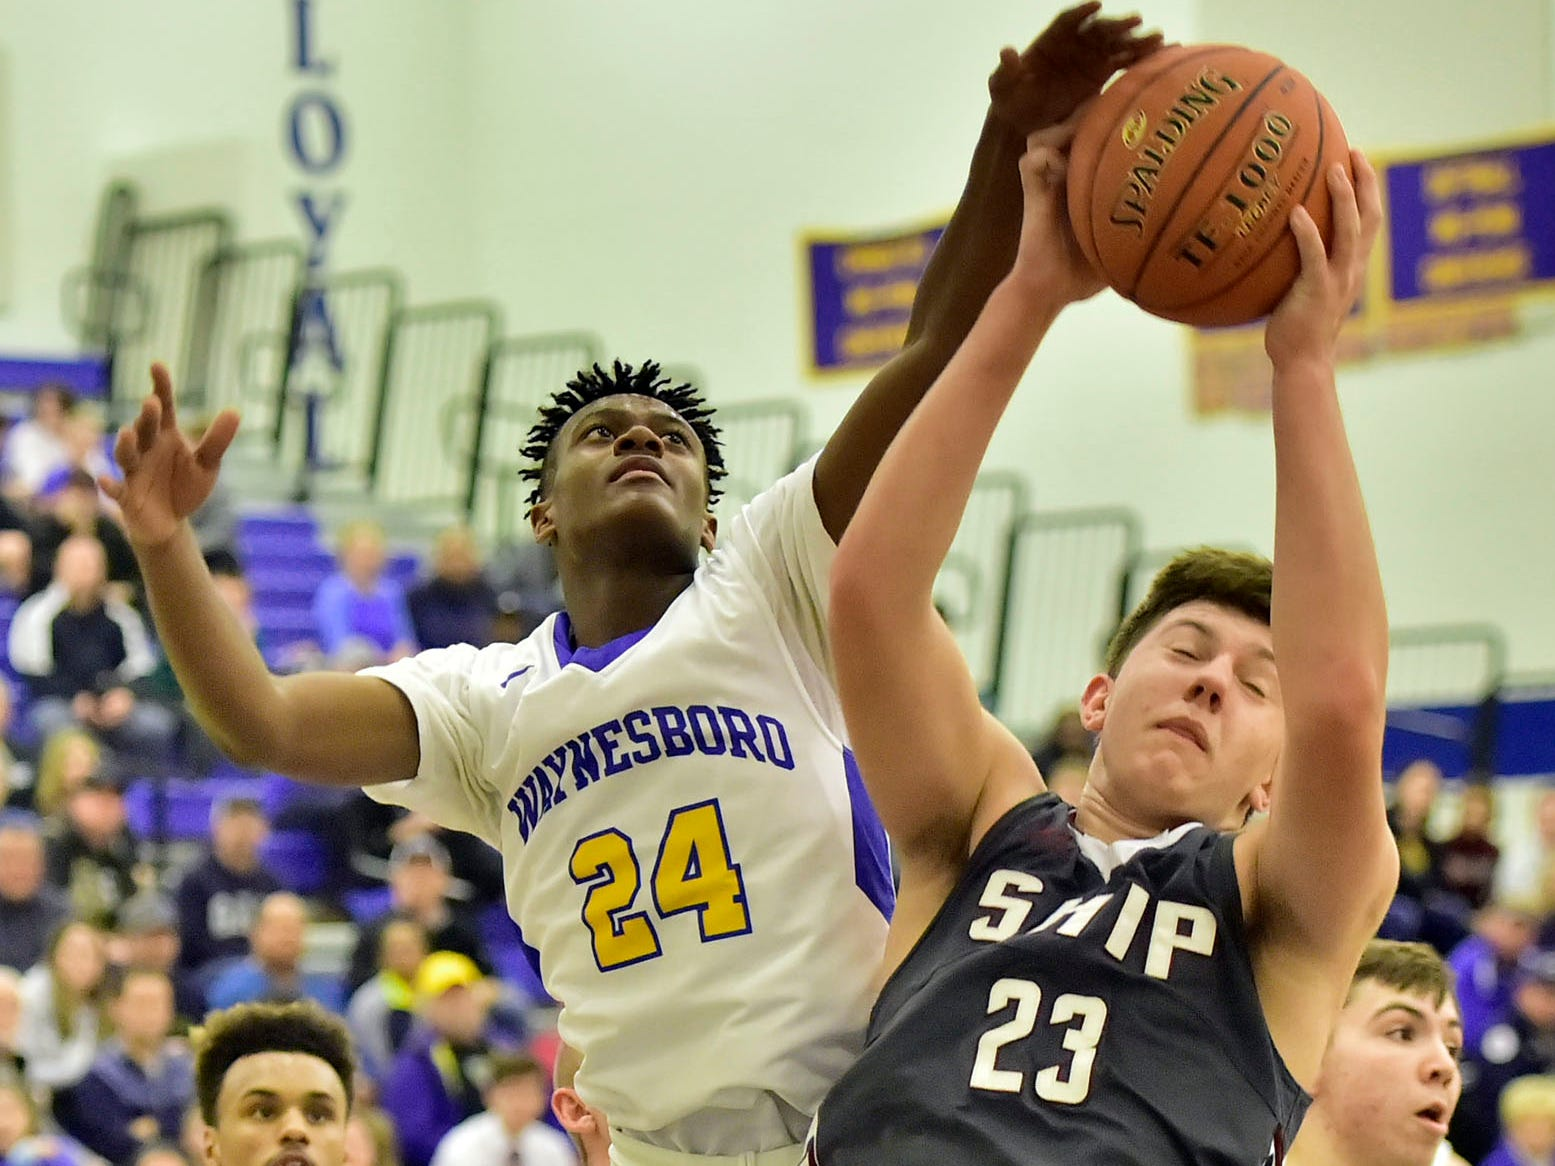 Shippensburg's Collin Taylor (23) grabs a rebound over Waynesboro's Jerem Brown (24) on Tuesday, December 18, 2018. Waynesboro defeated Shippensburg 72-59 during a home game.